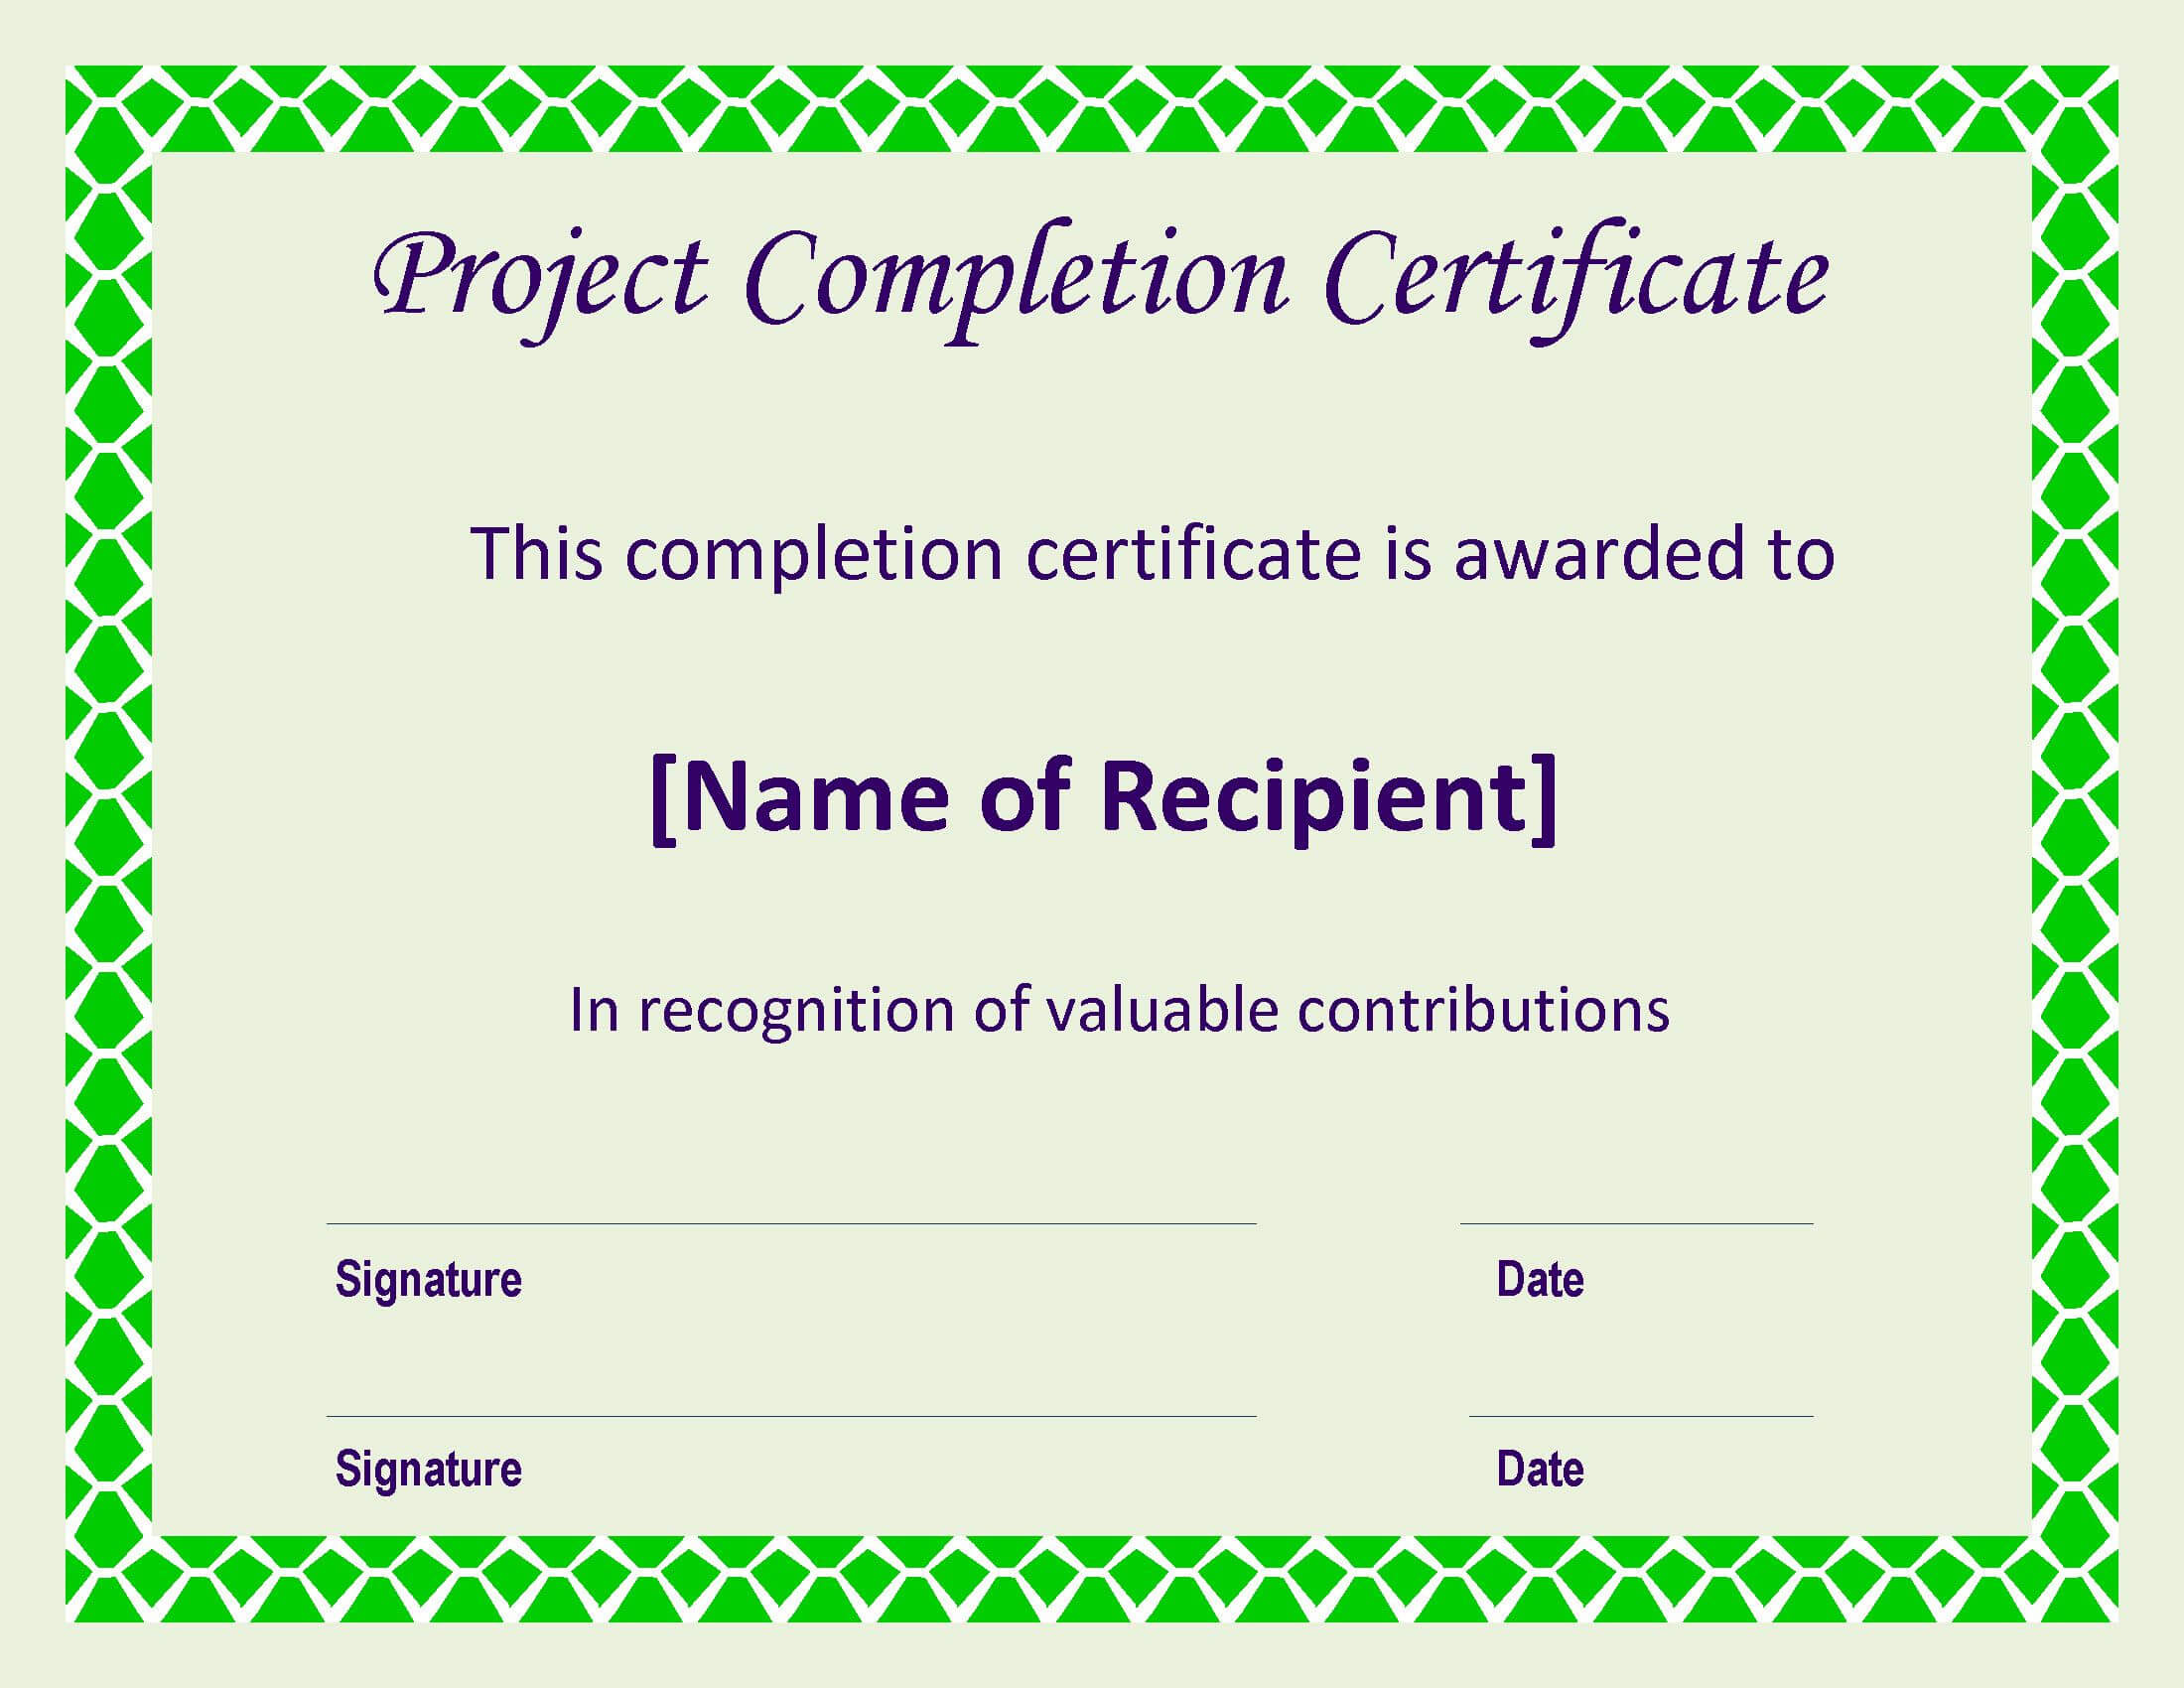 Certificate Of Completion Project | Templates At Within Certificate Template For Project Completion